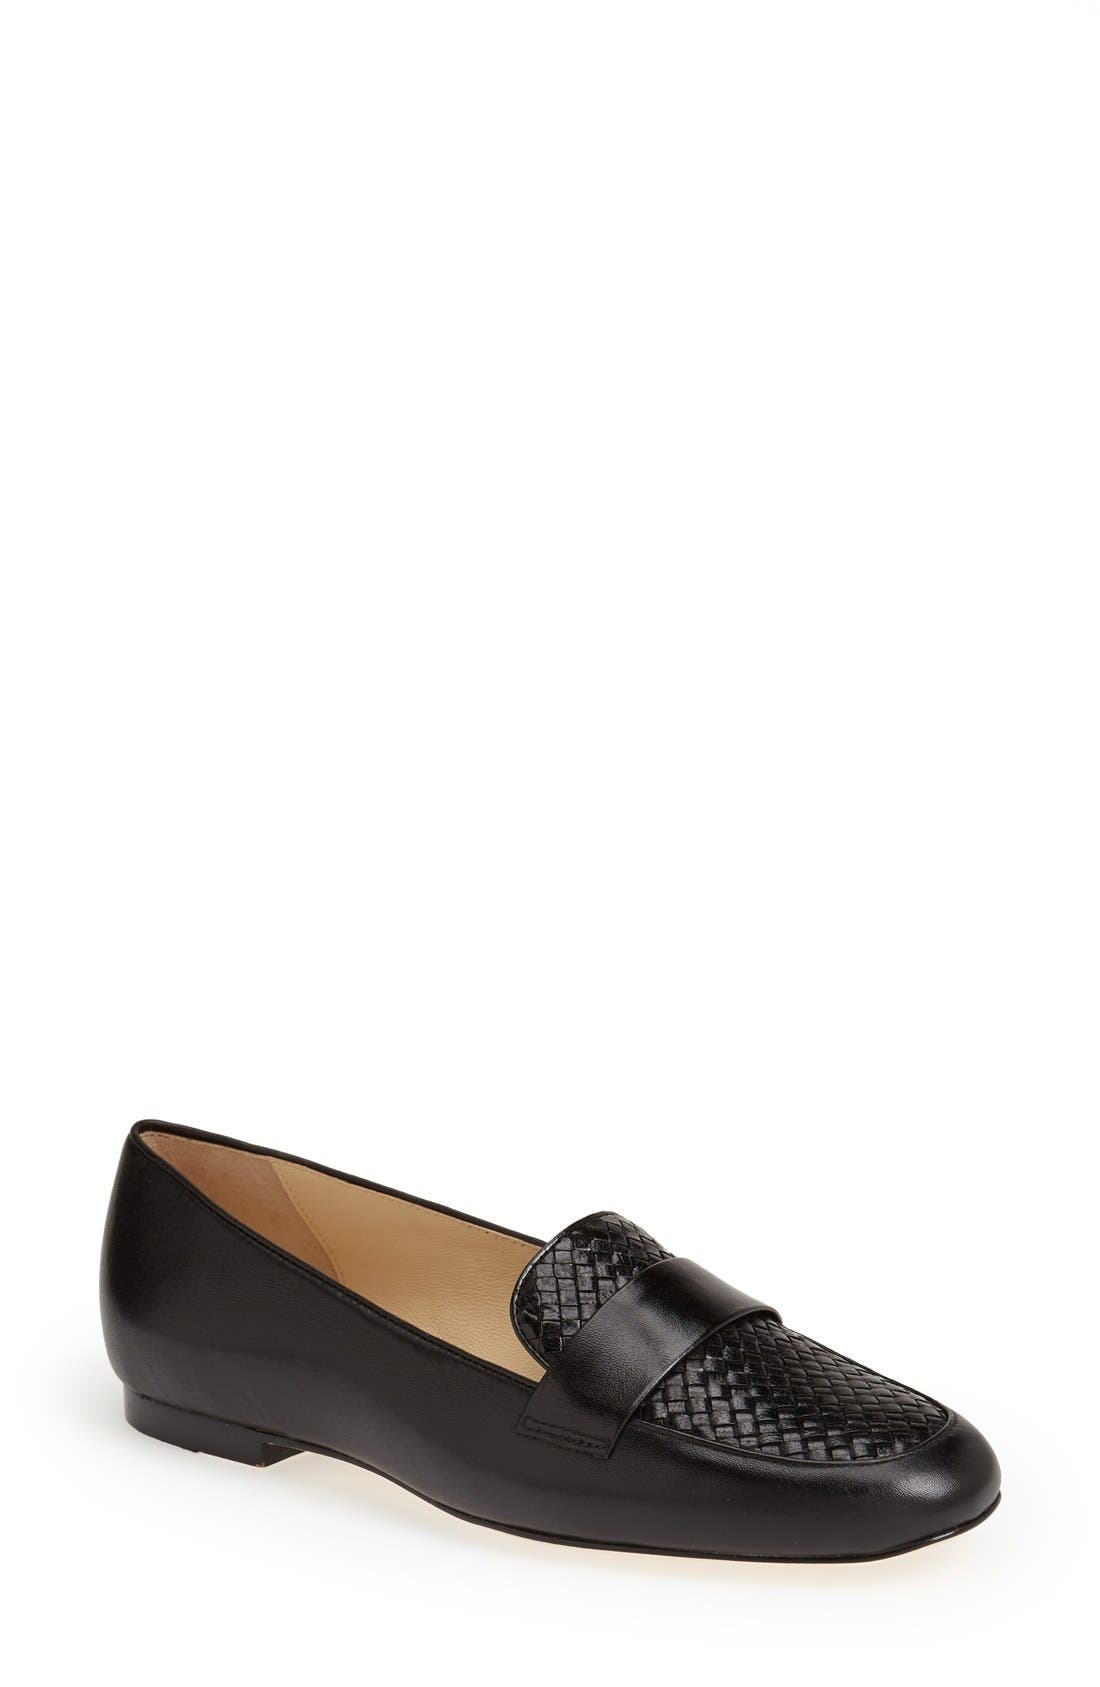 Alternate Image 1 Selected - Cole Haan 'Dakota' Woven Leather Loafer (Women)